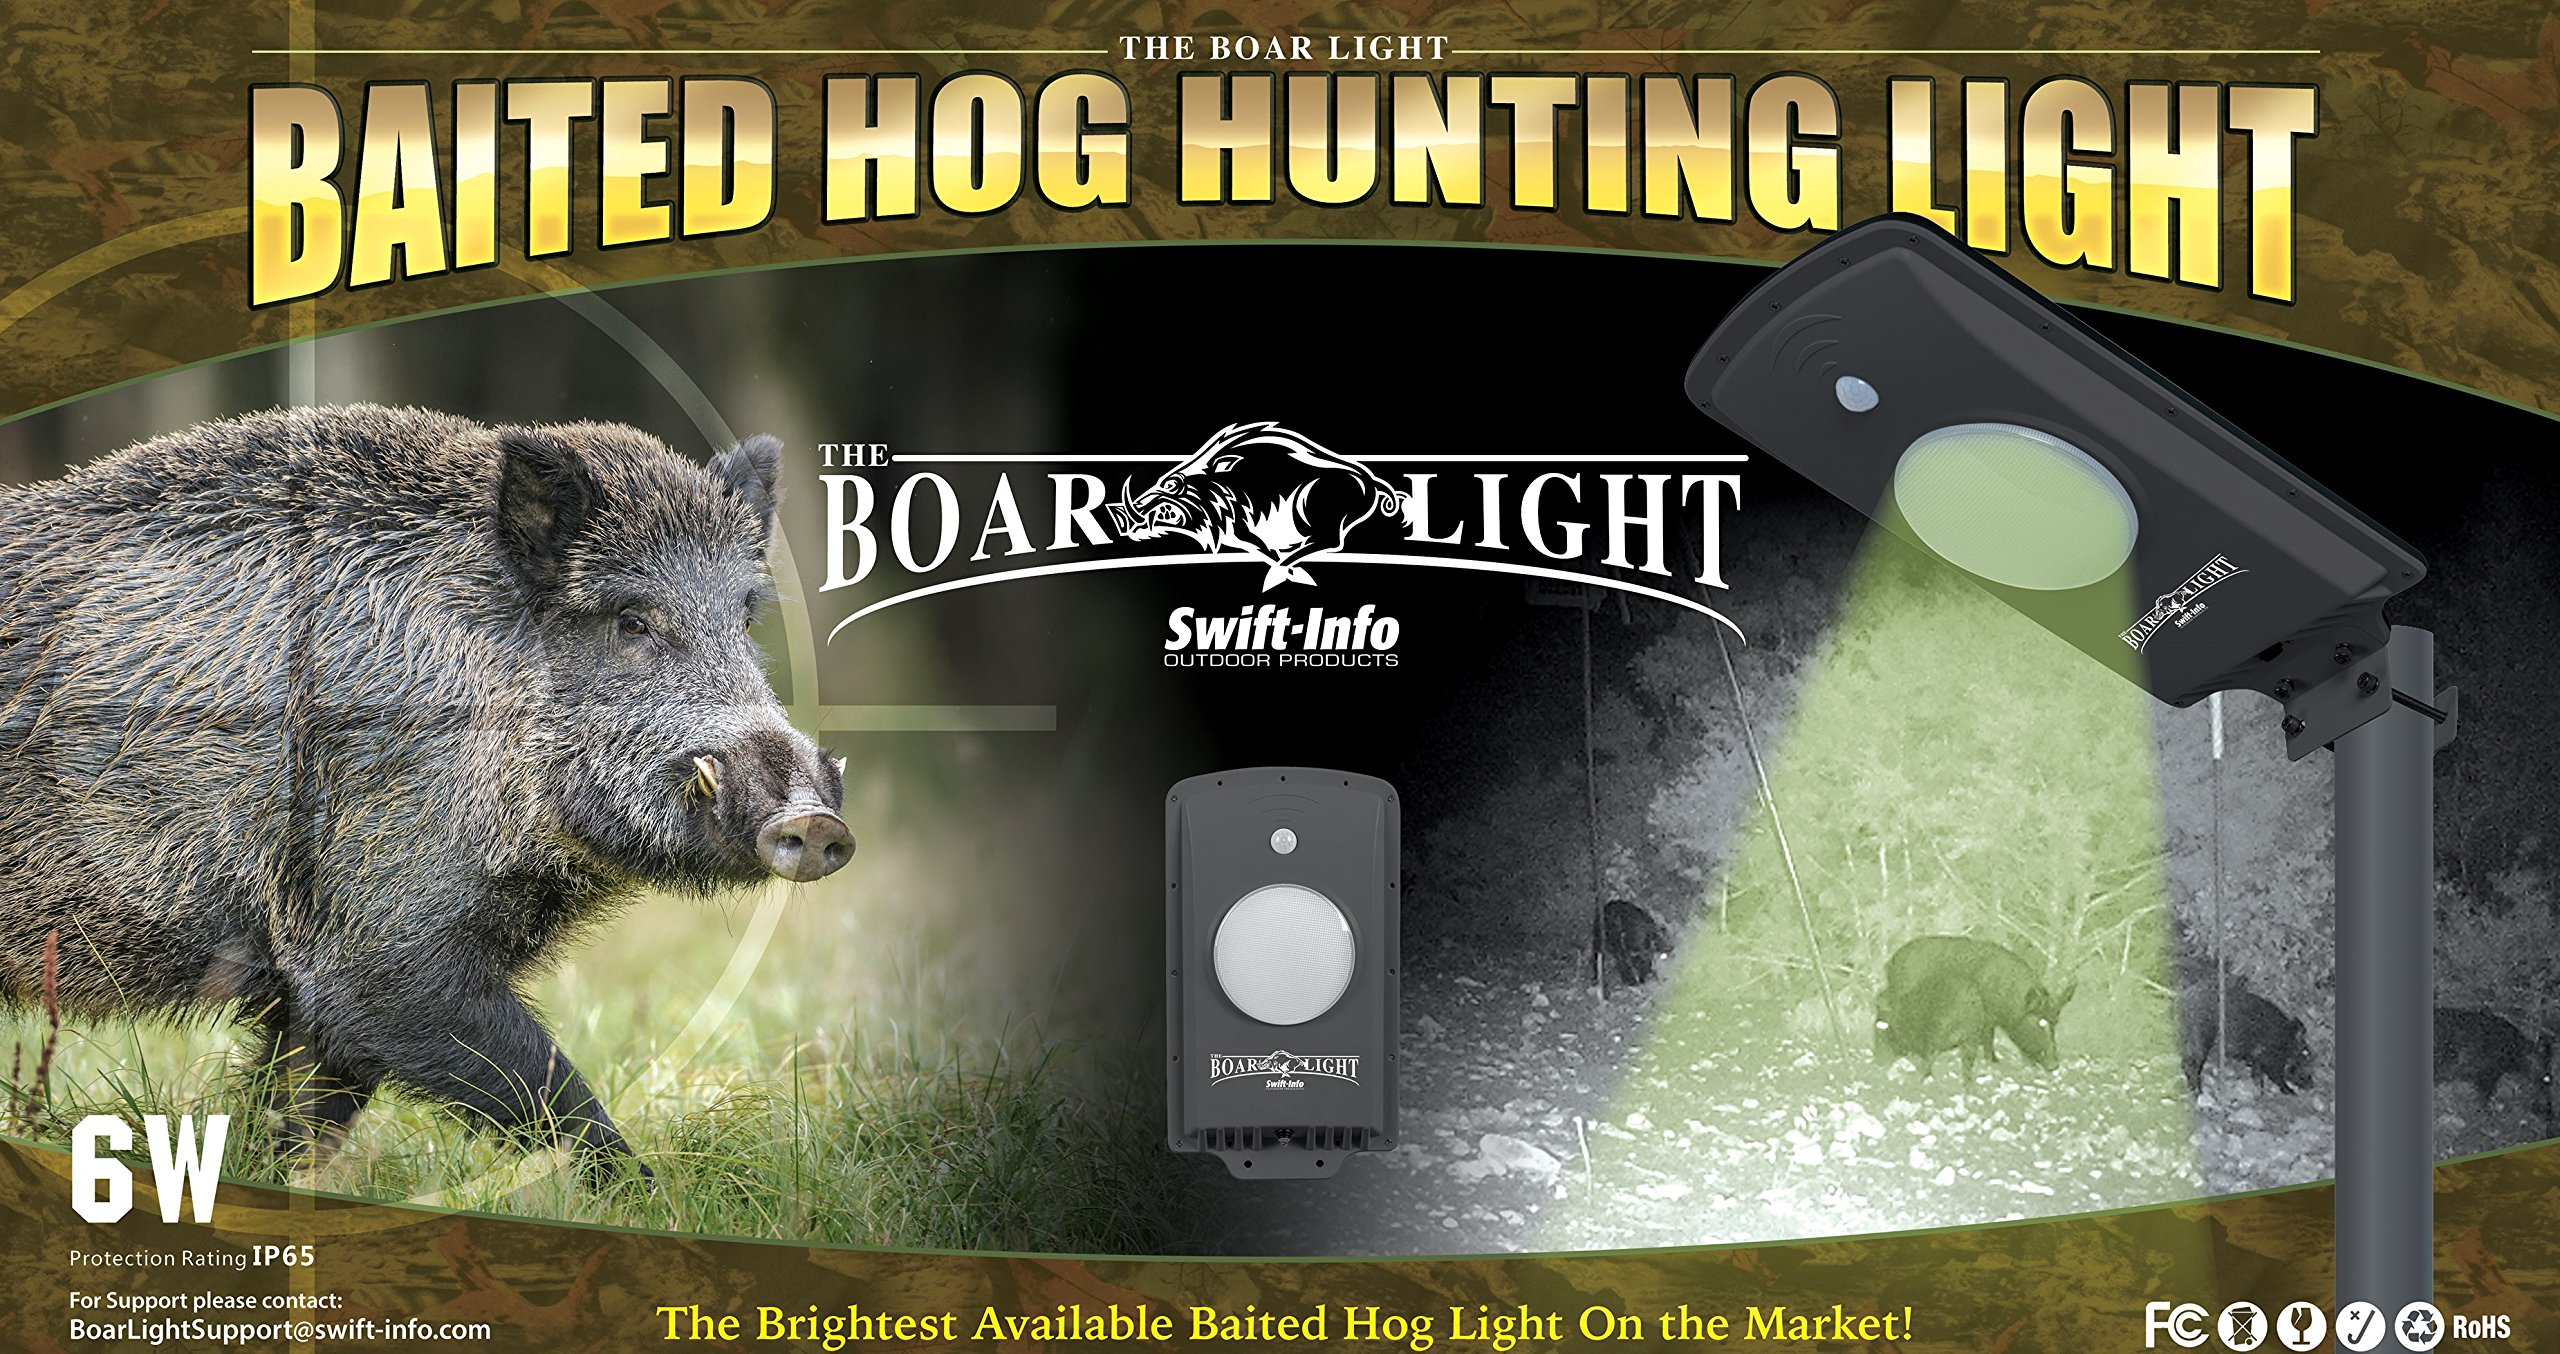 The Boar Light - Baited Hog Hunting Light by Swift-Info Outdoor Products